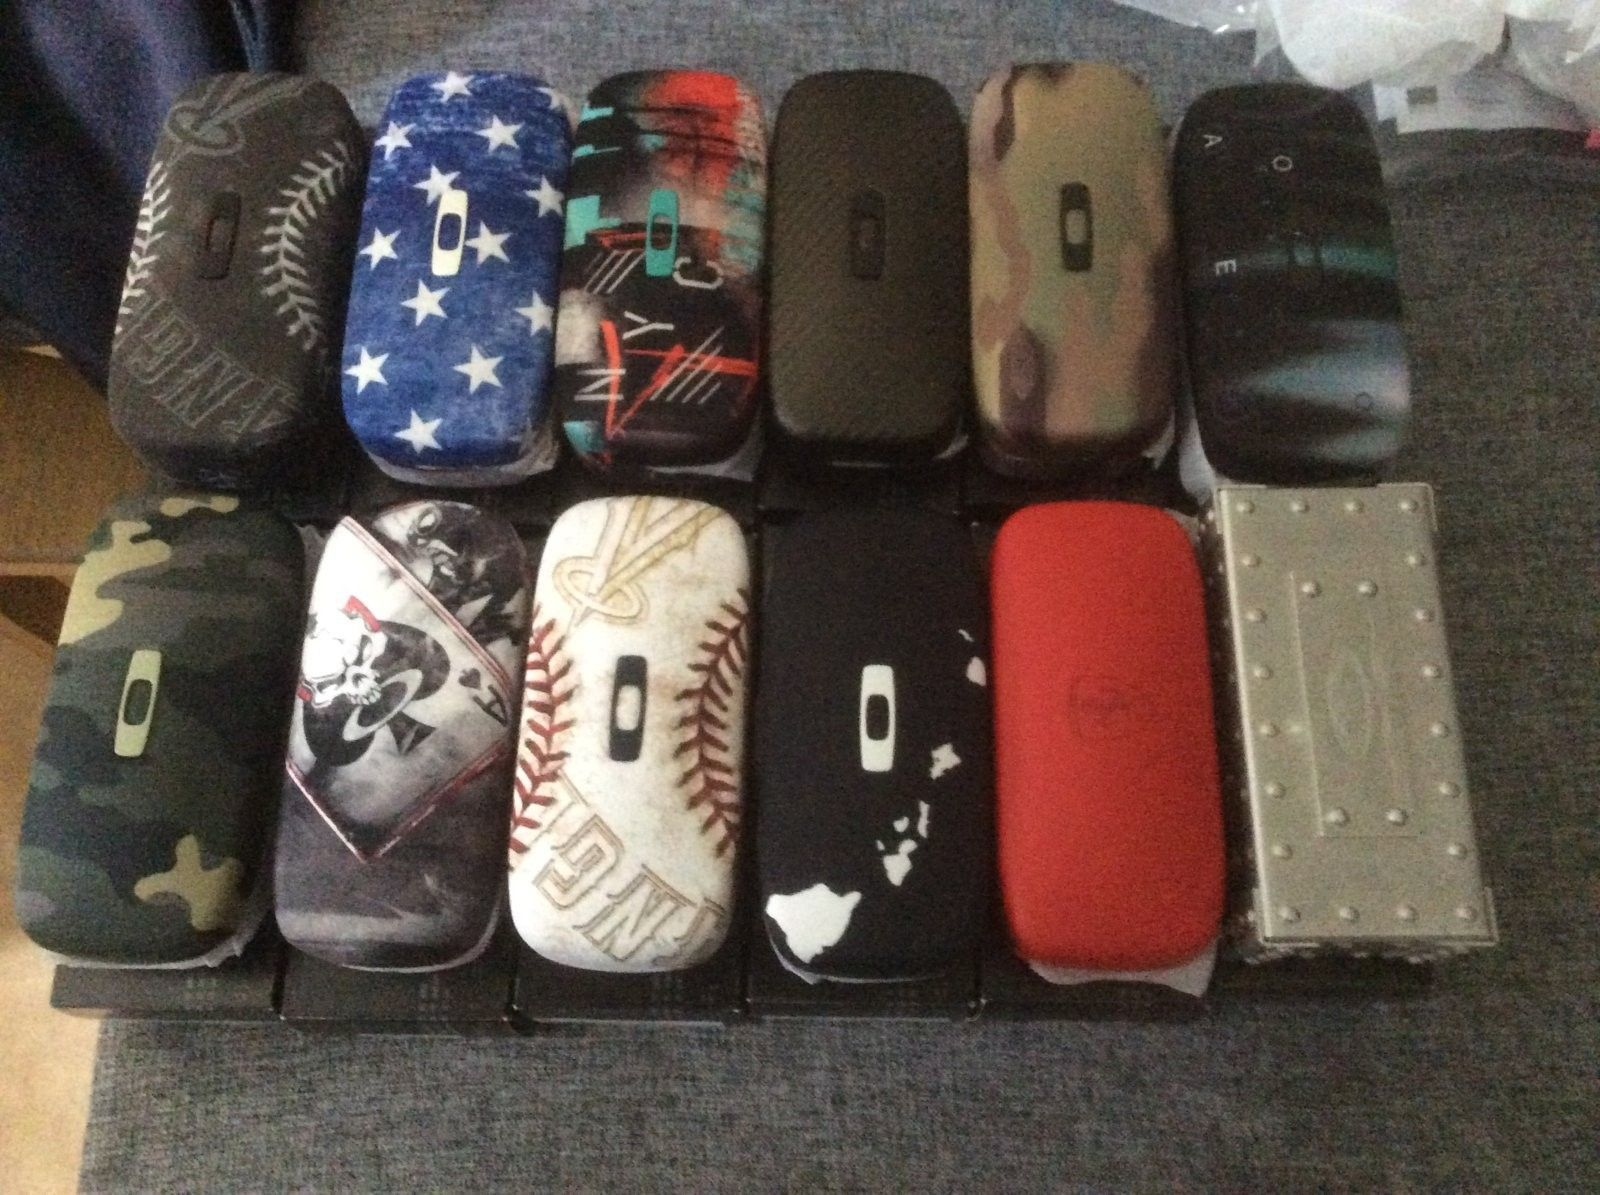 Looking for some microfibre bags to match o cases - image.jpeg